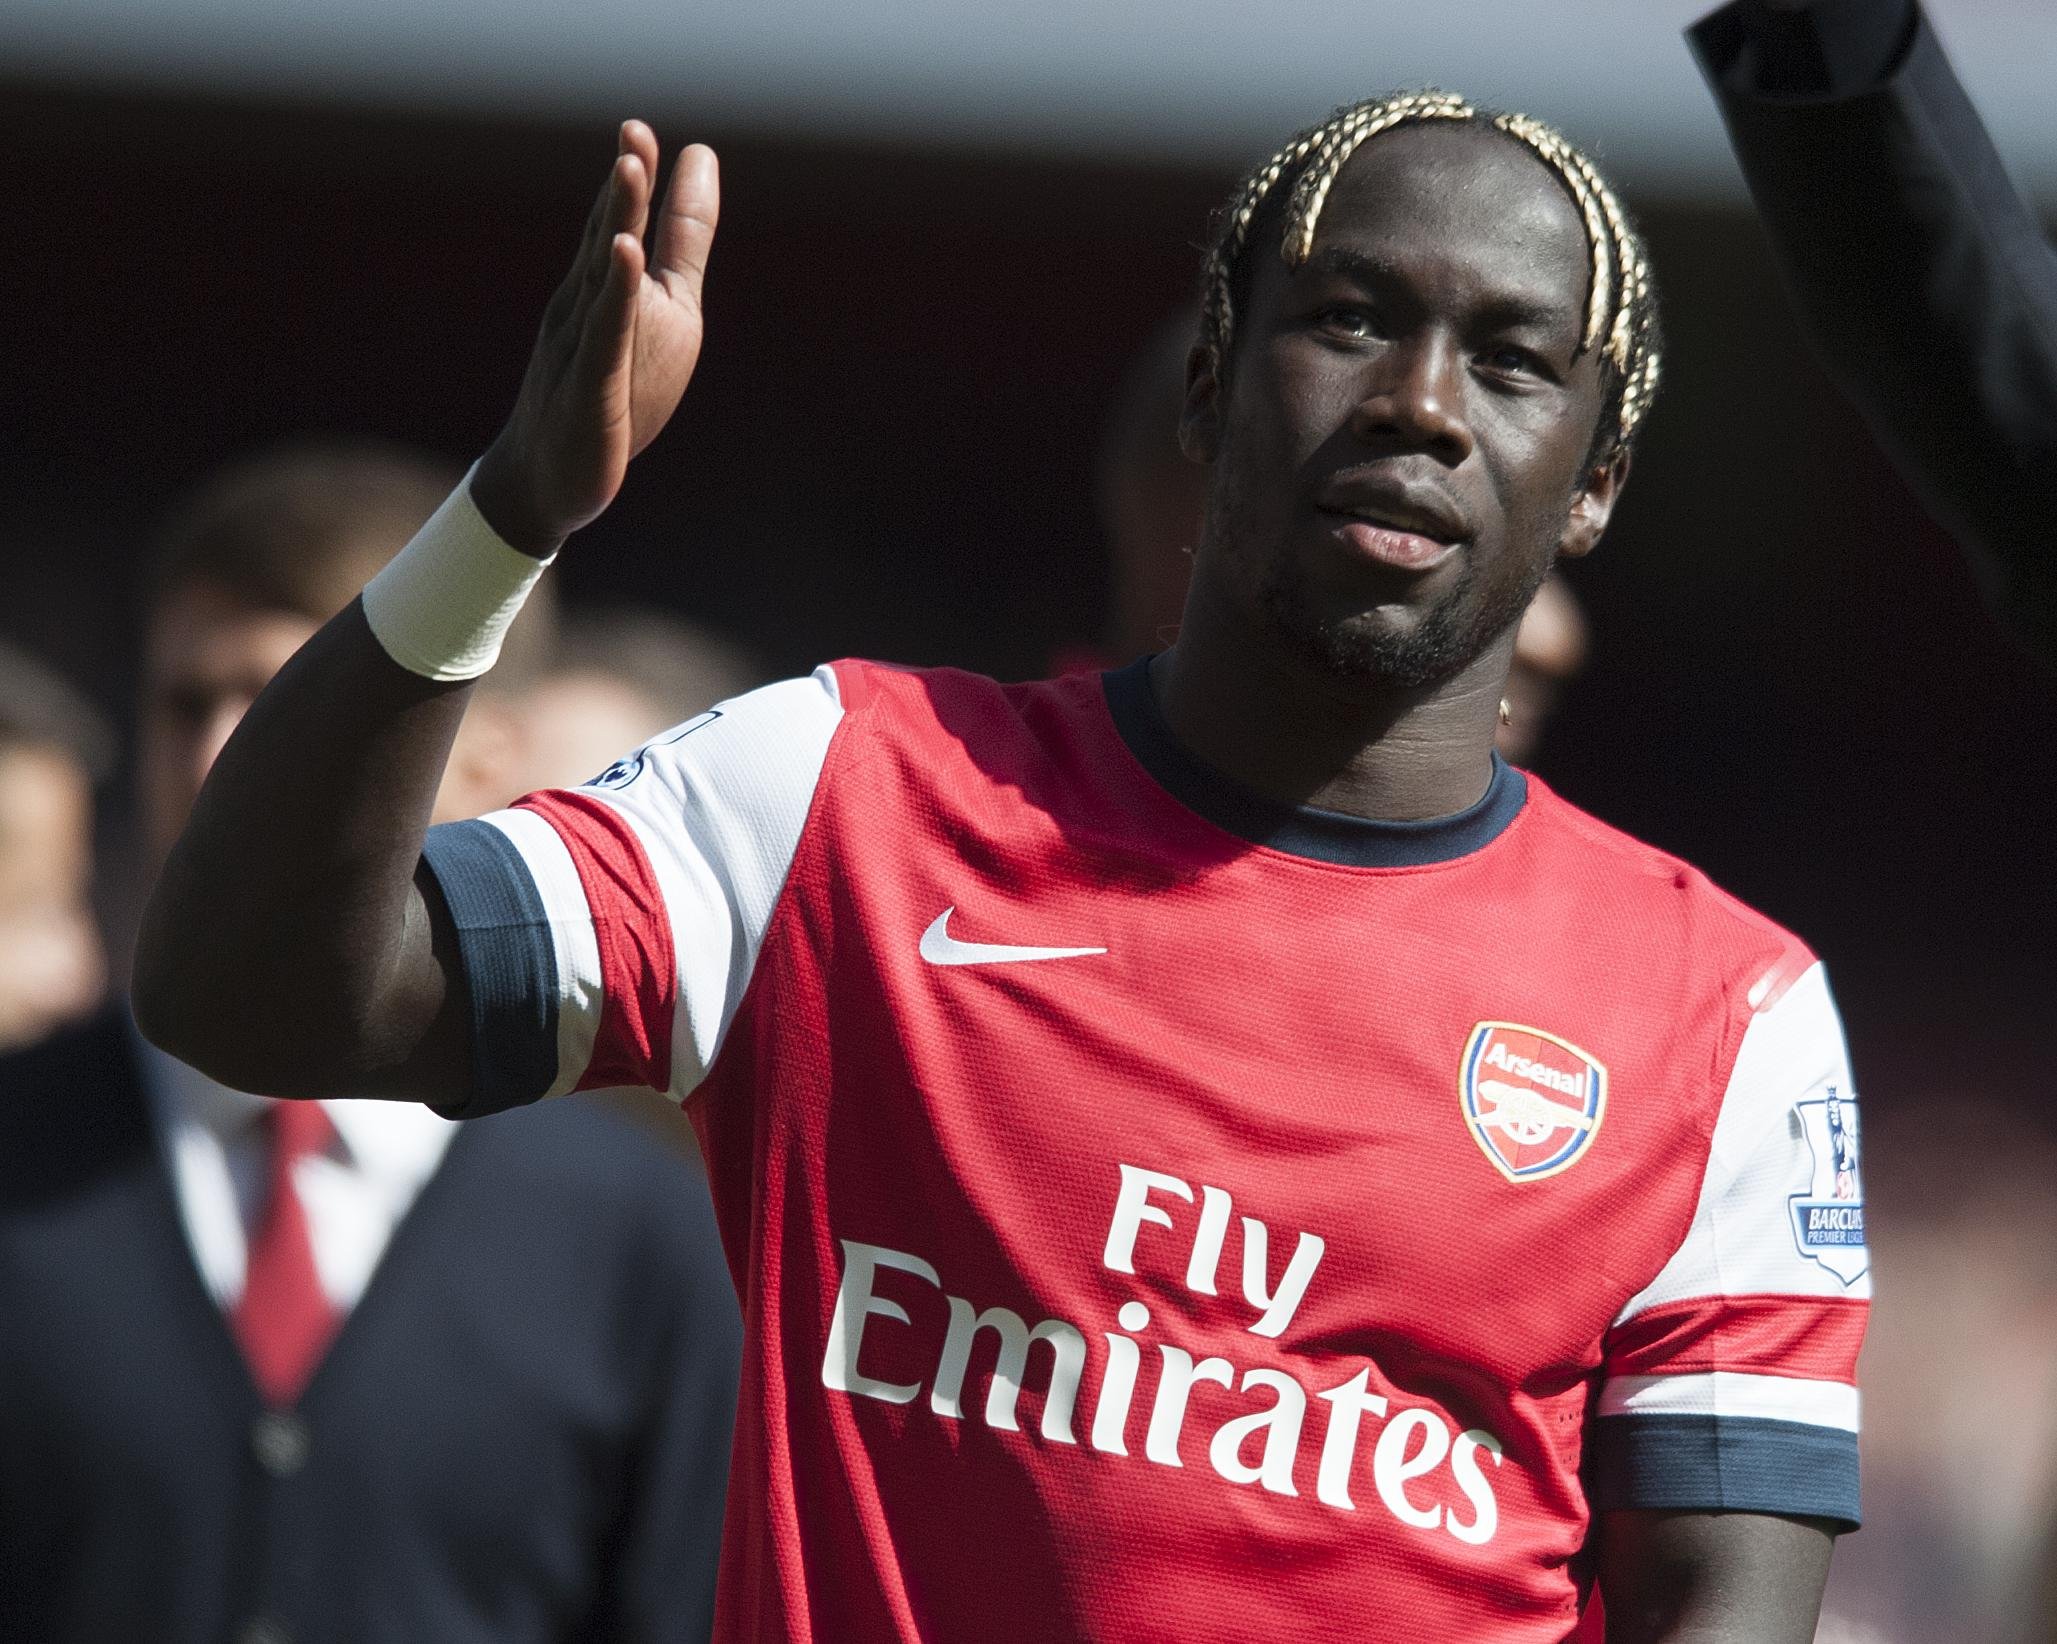 Sagna has already agreed to the deal